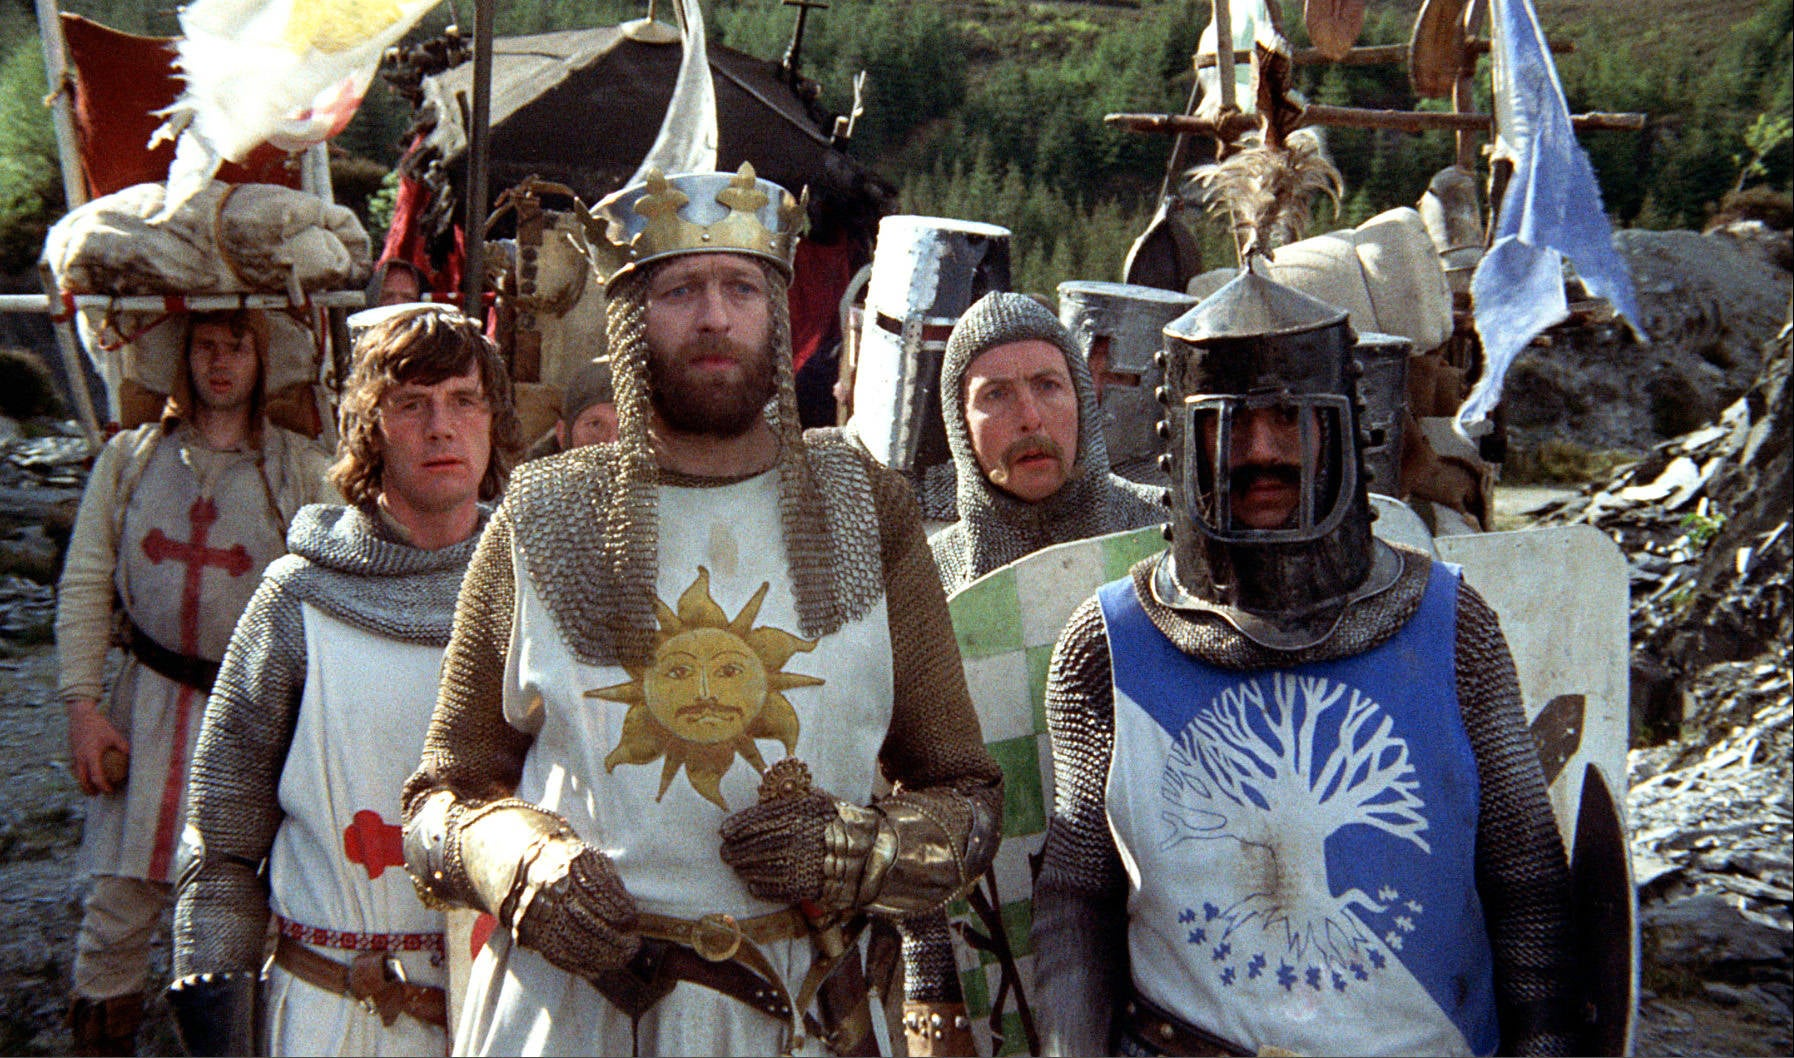 Monty Python & The Holy Grail Re-Cut As An Intense Drama